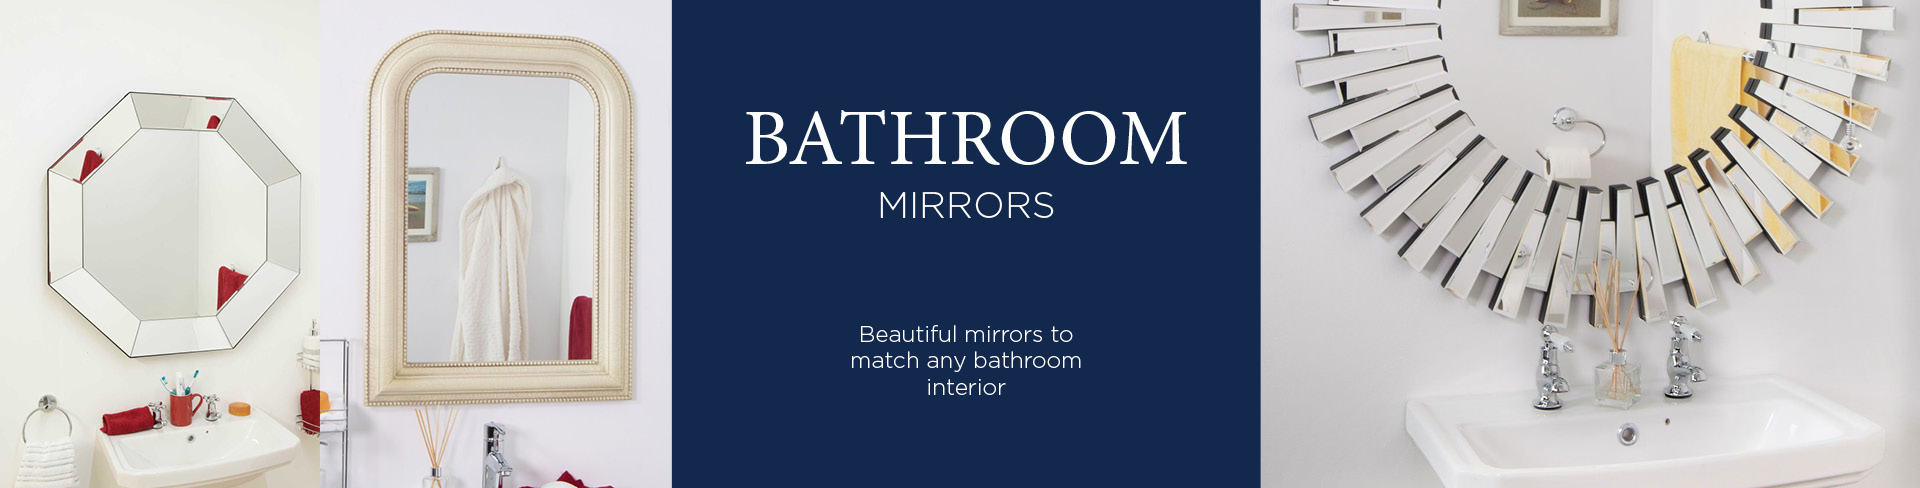 Bathroom Mirrors Range bathroom mirror & shaving mirrors | mirror outlet